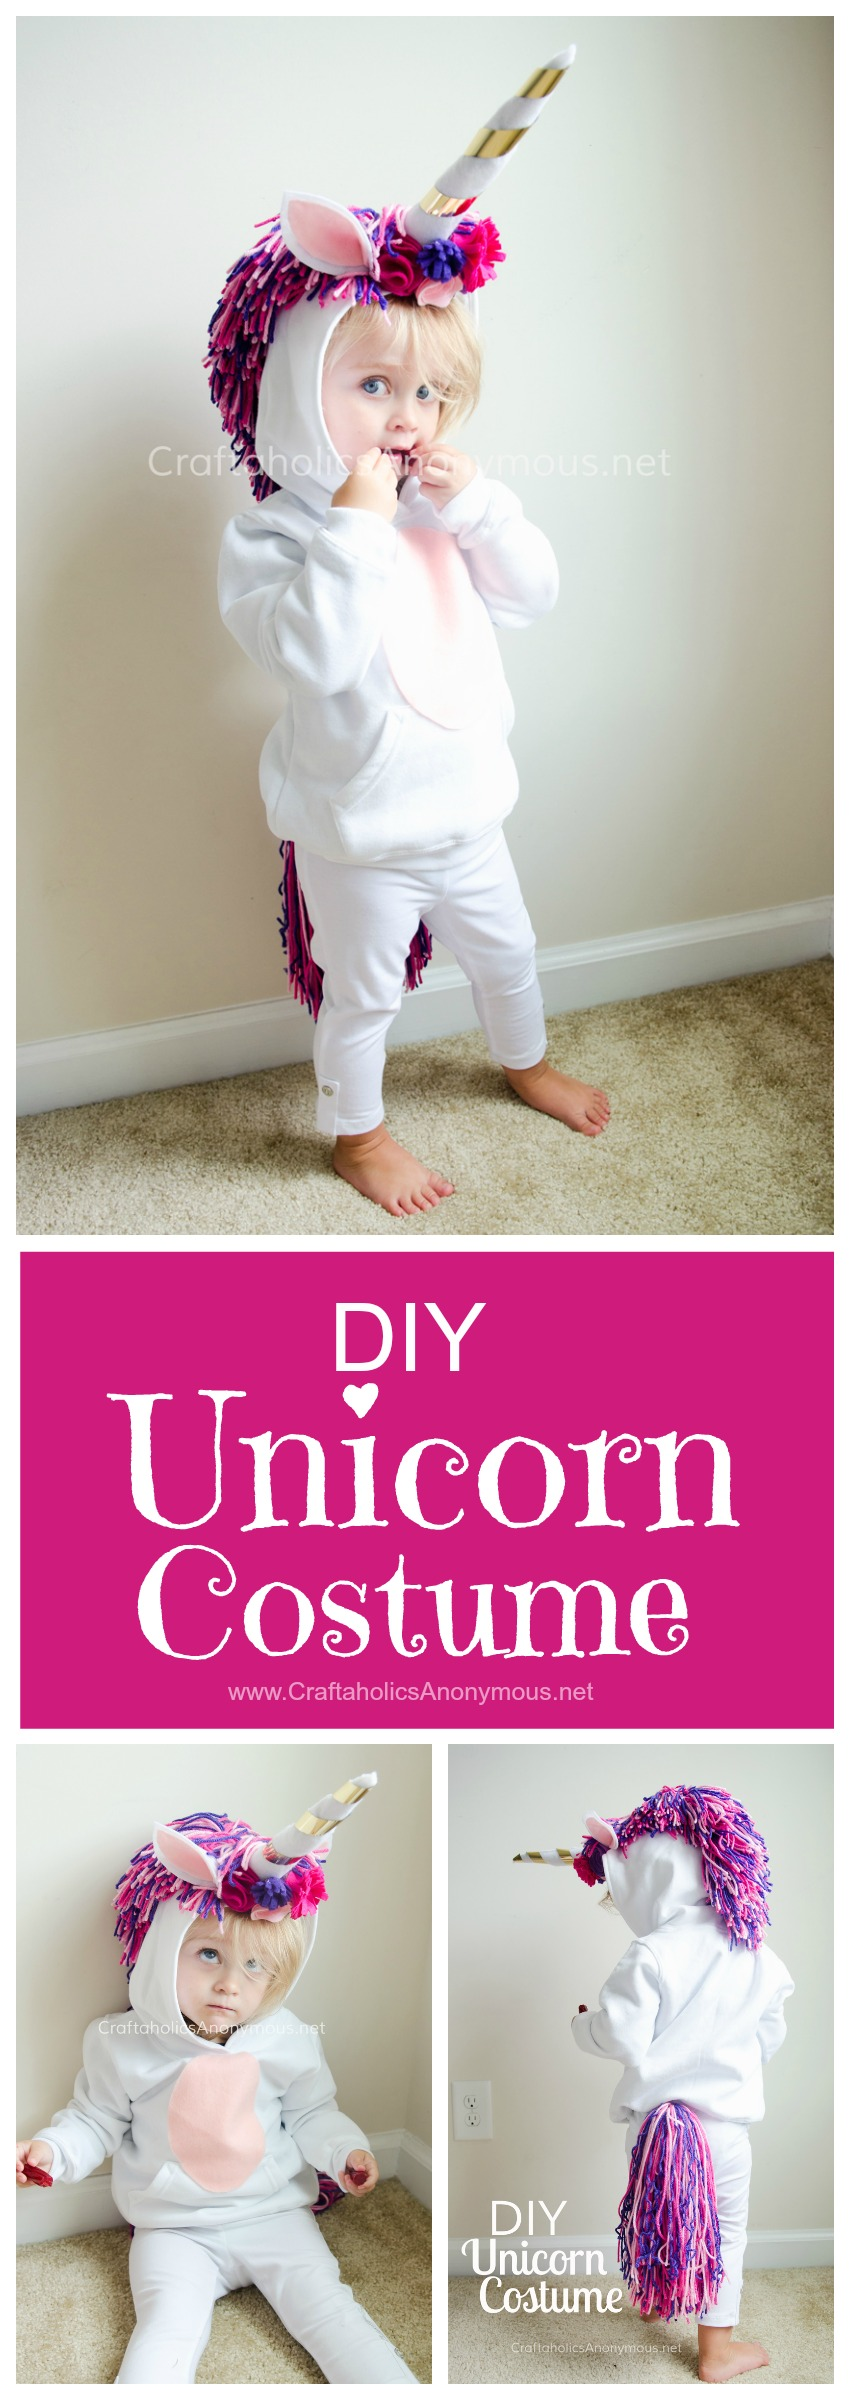 15 of the best diy halloween costumes for kids - 15 of the best